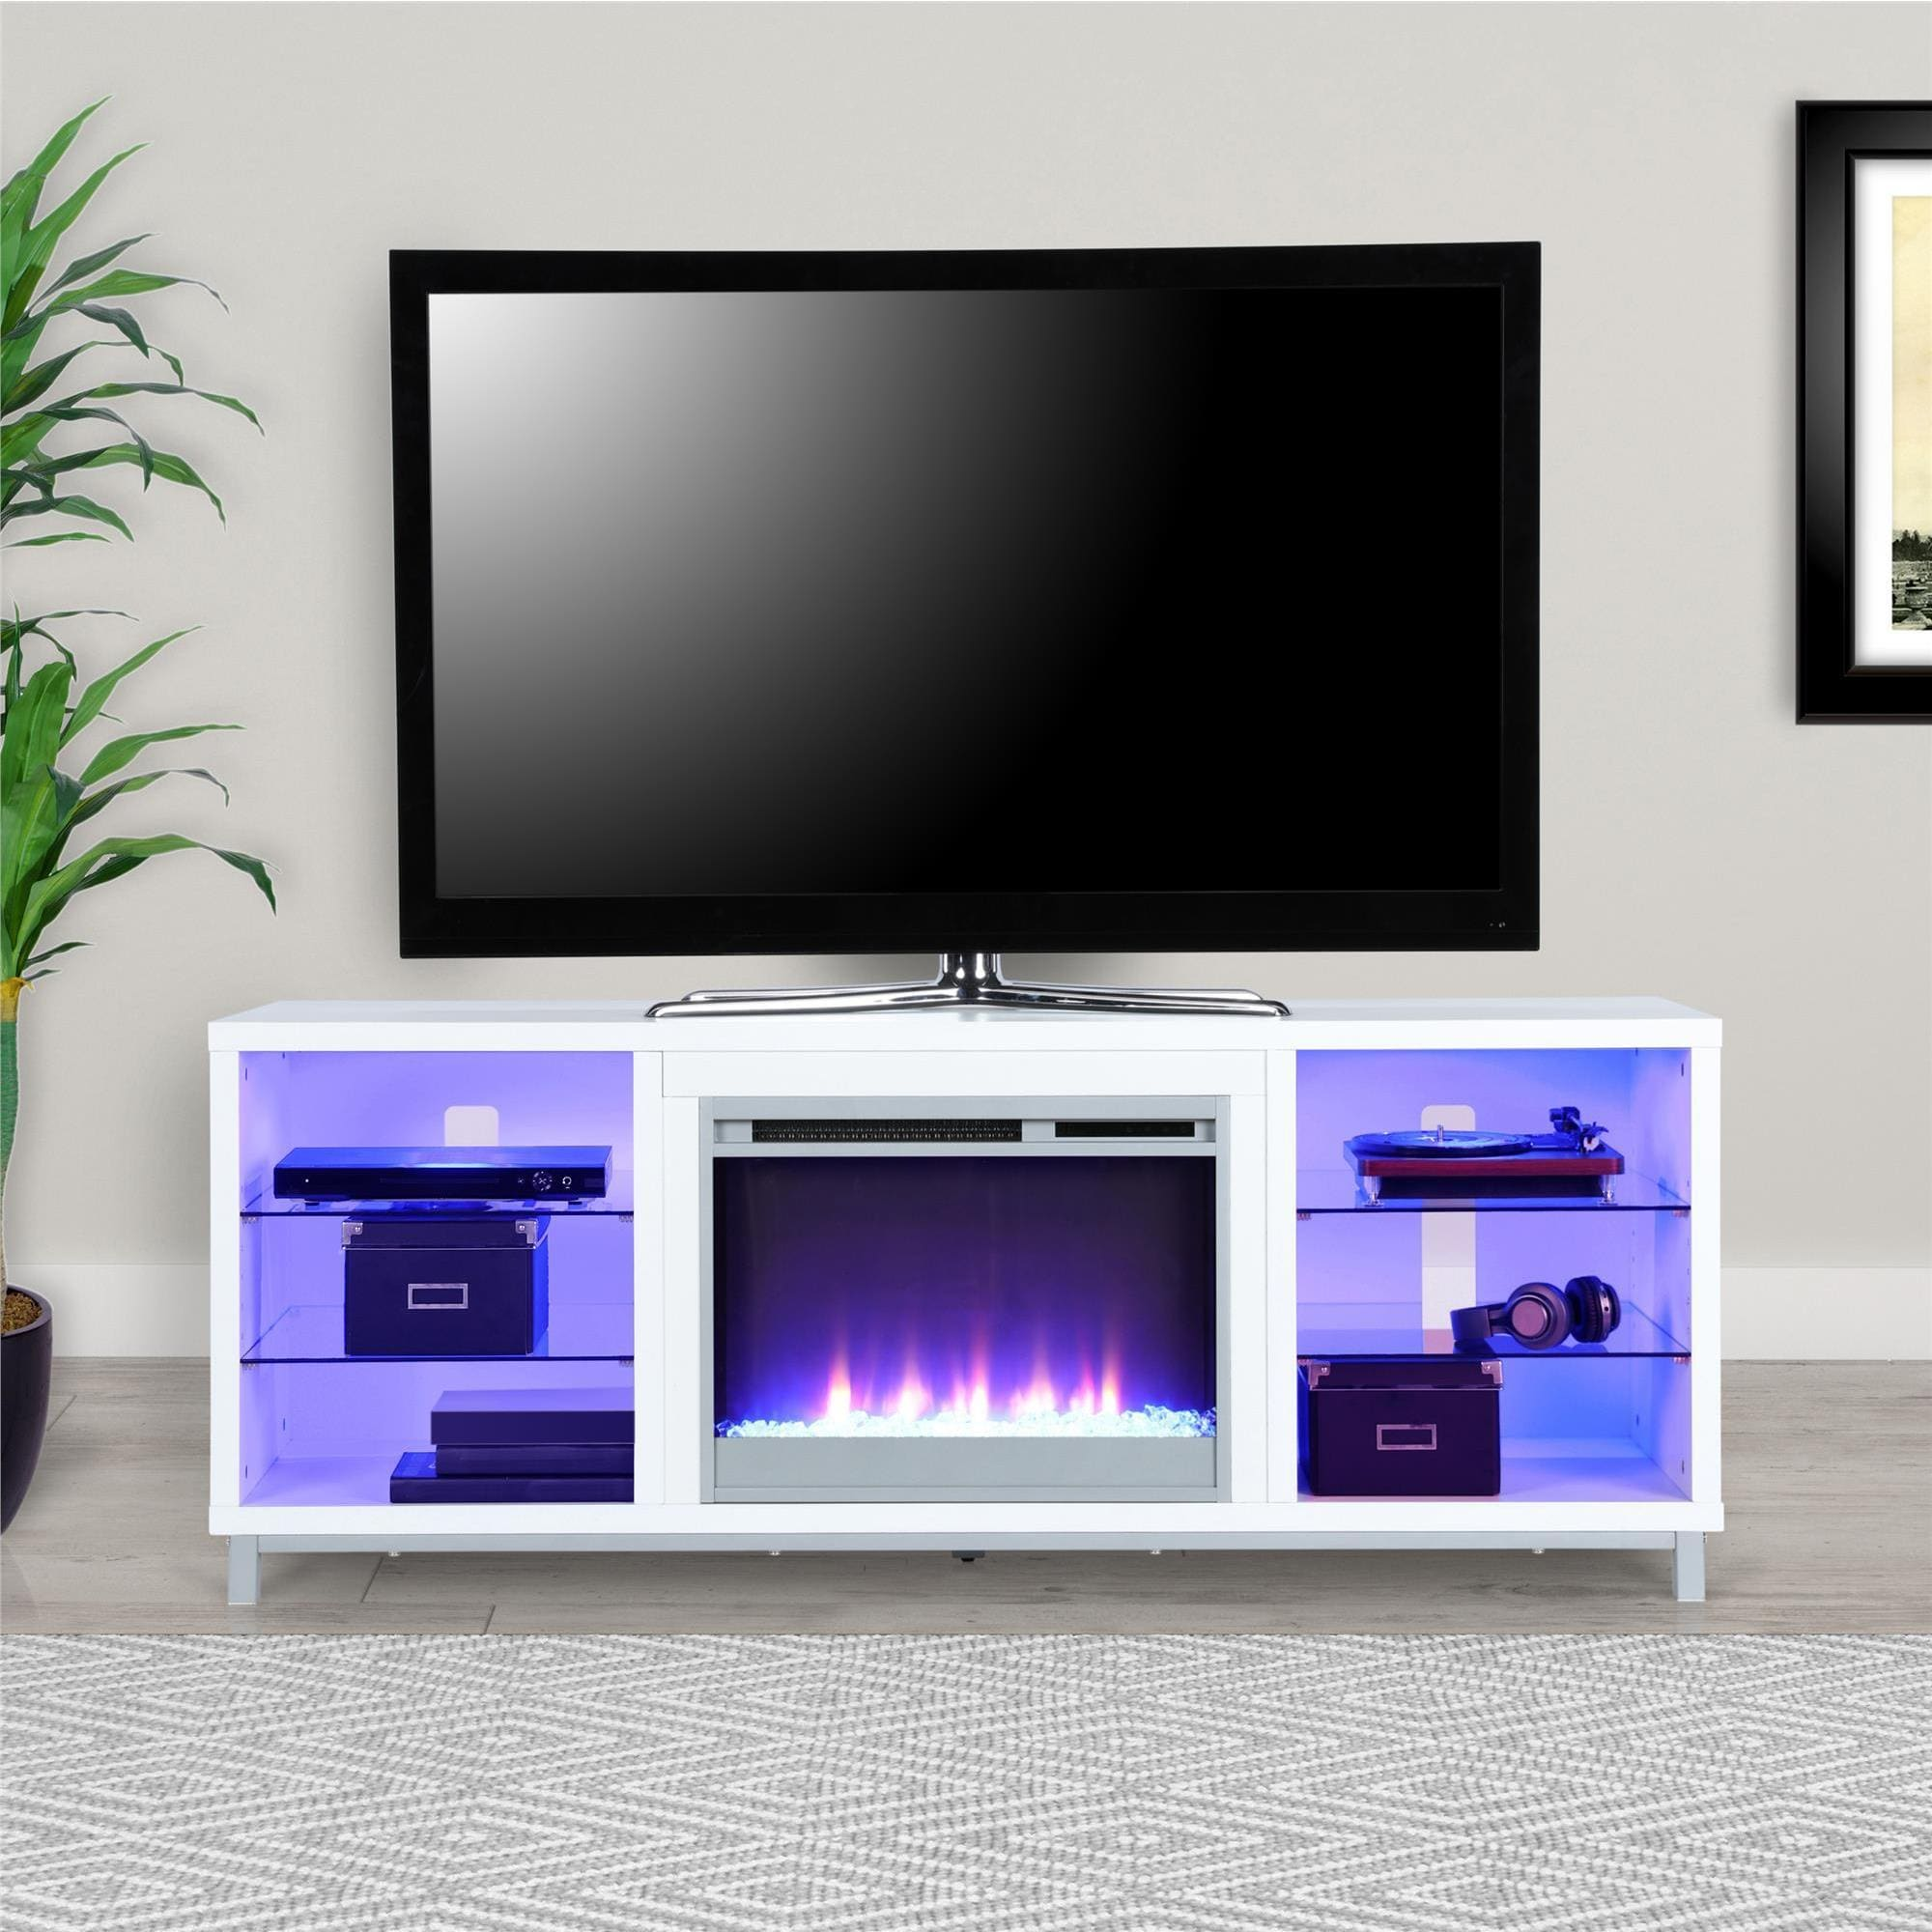 Shop Avenue Greene Westwood Fireplace Tv Stand For Tvs Up To 70